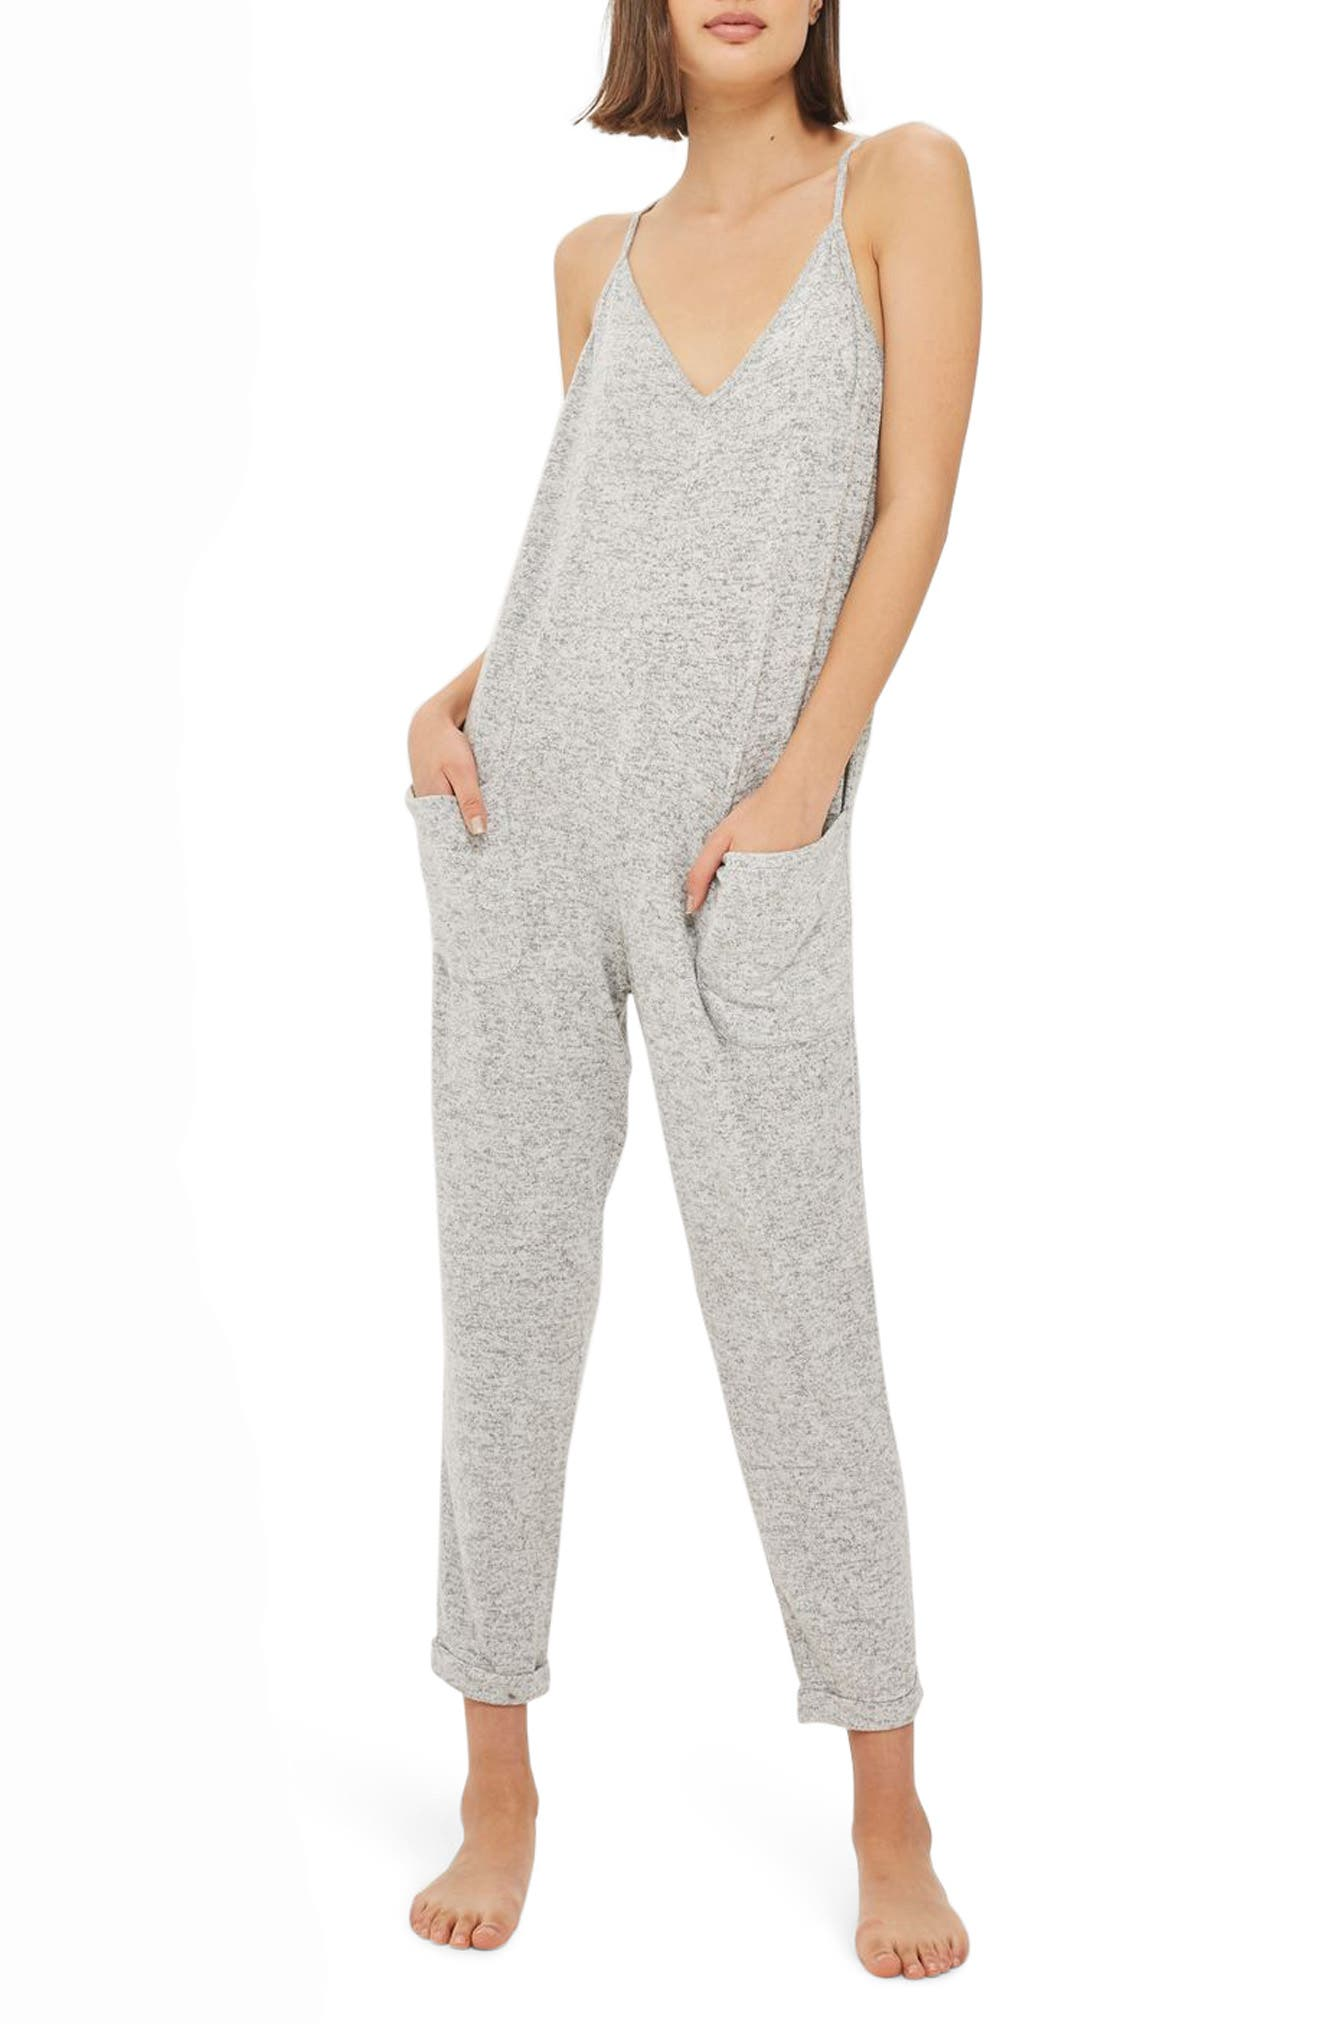 Topshop Supersoft Lounge Jumpsuit